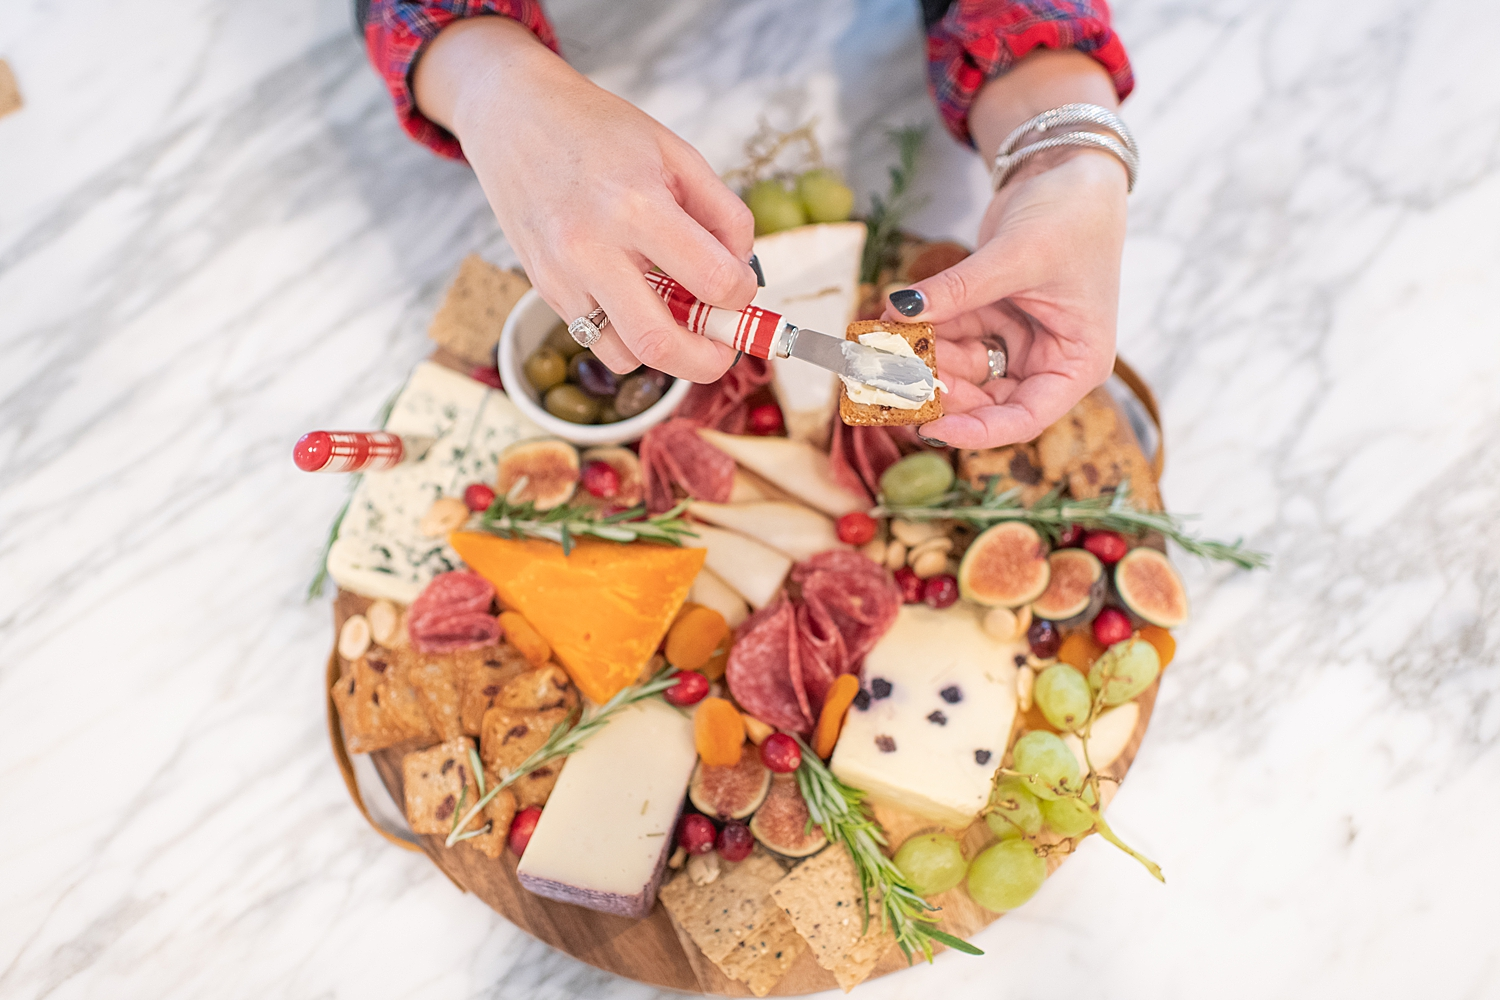 Top Houston life and style blogger, Fancy Ashley, features her tips to prepare the perfect Charcuterie Tray for the Holidays: image of a woman holding a festive charcuterie tray